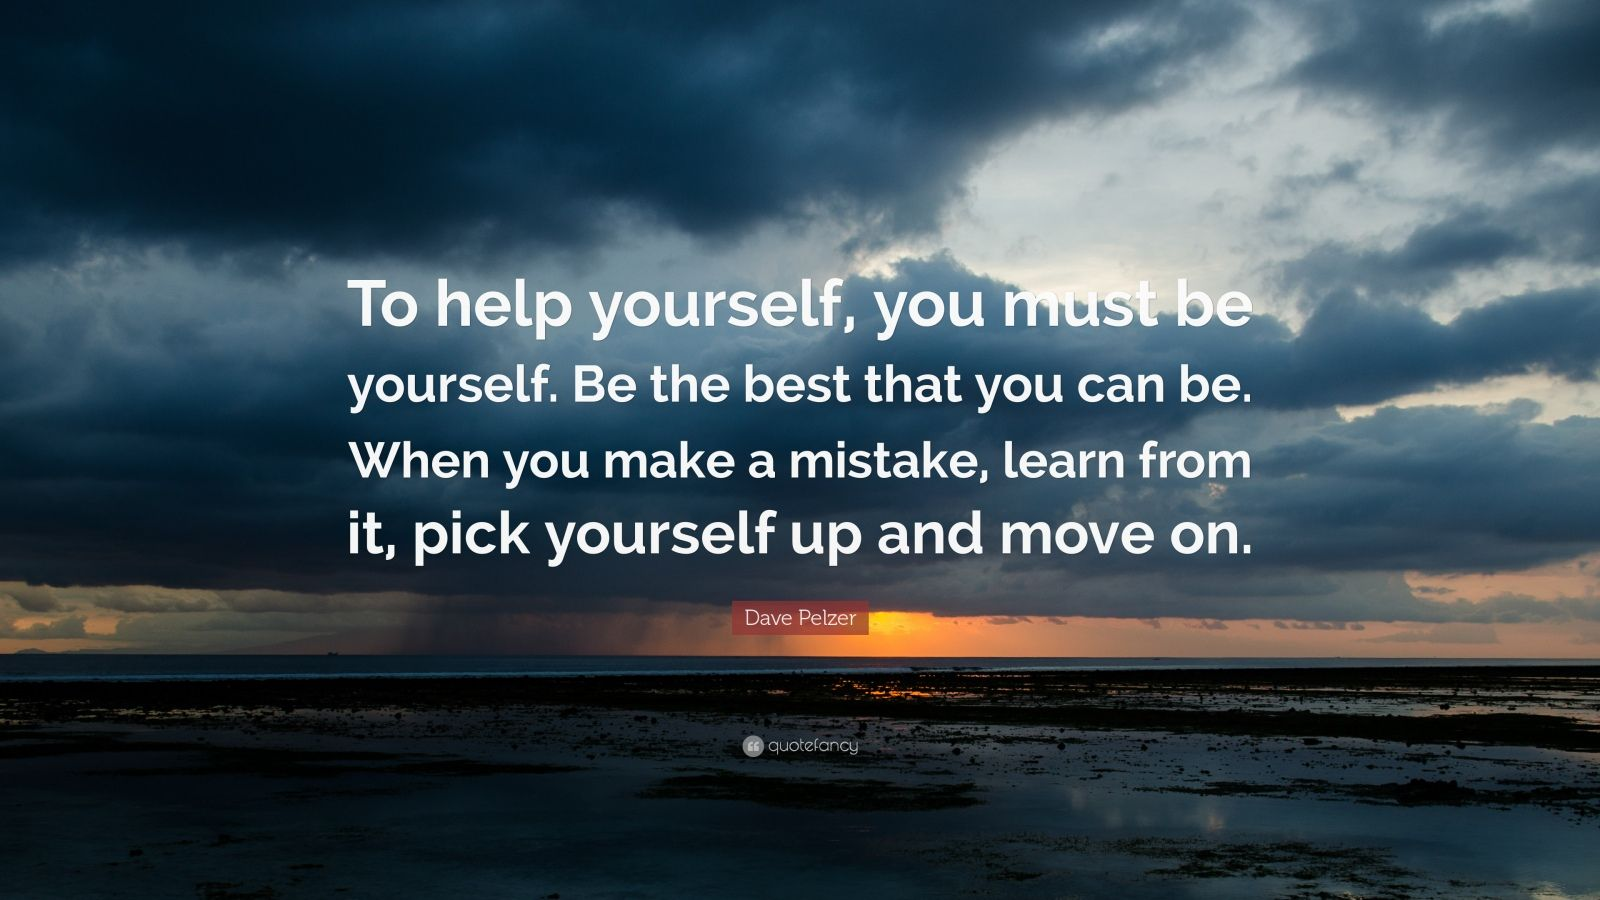 """Dave Pelzer Quote: """"To help yourself, you must be yourself. Be the best that you can be. When you make a mistake, learn from it, pick yourself up and move on."""""""